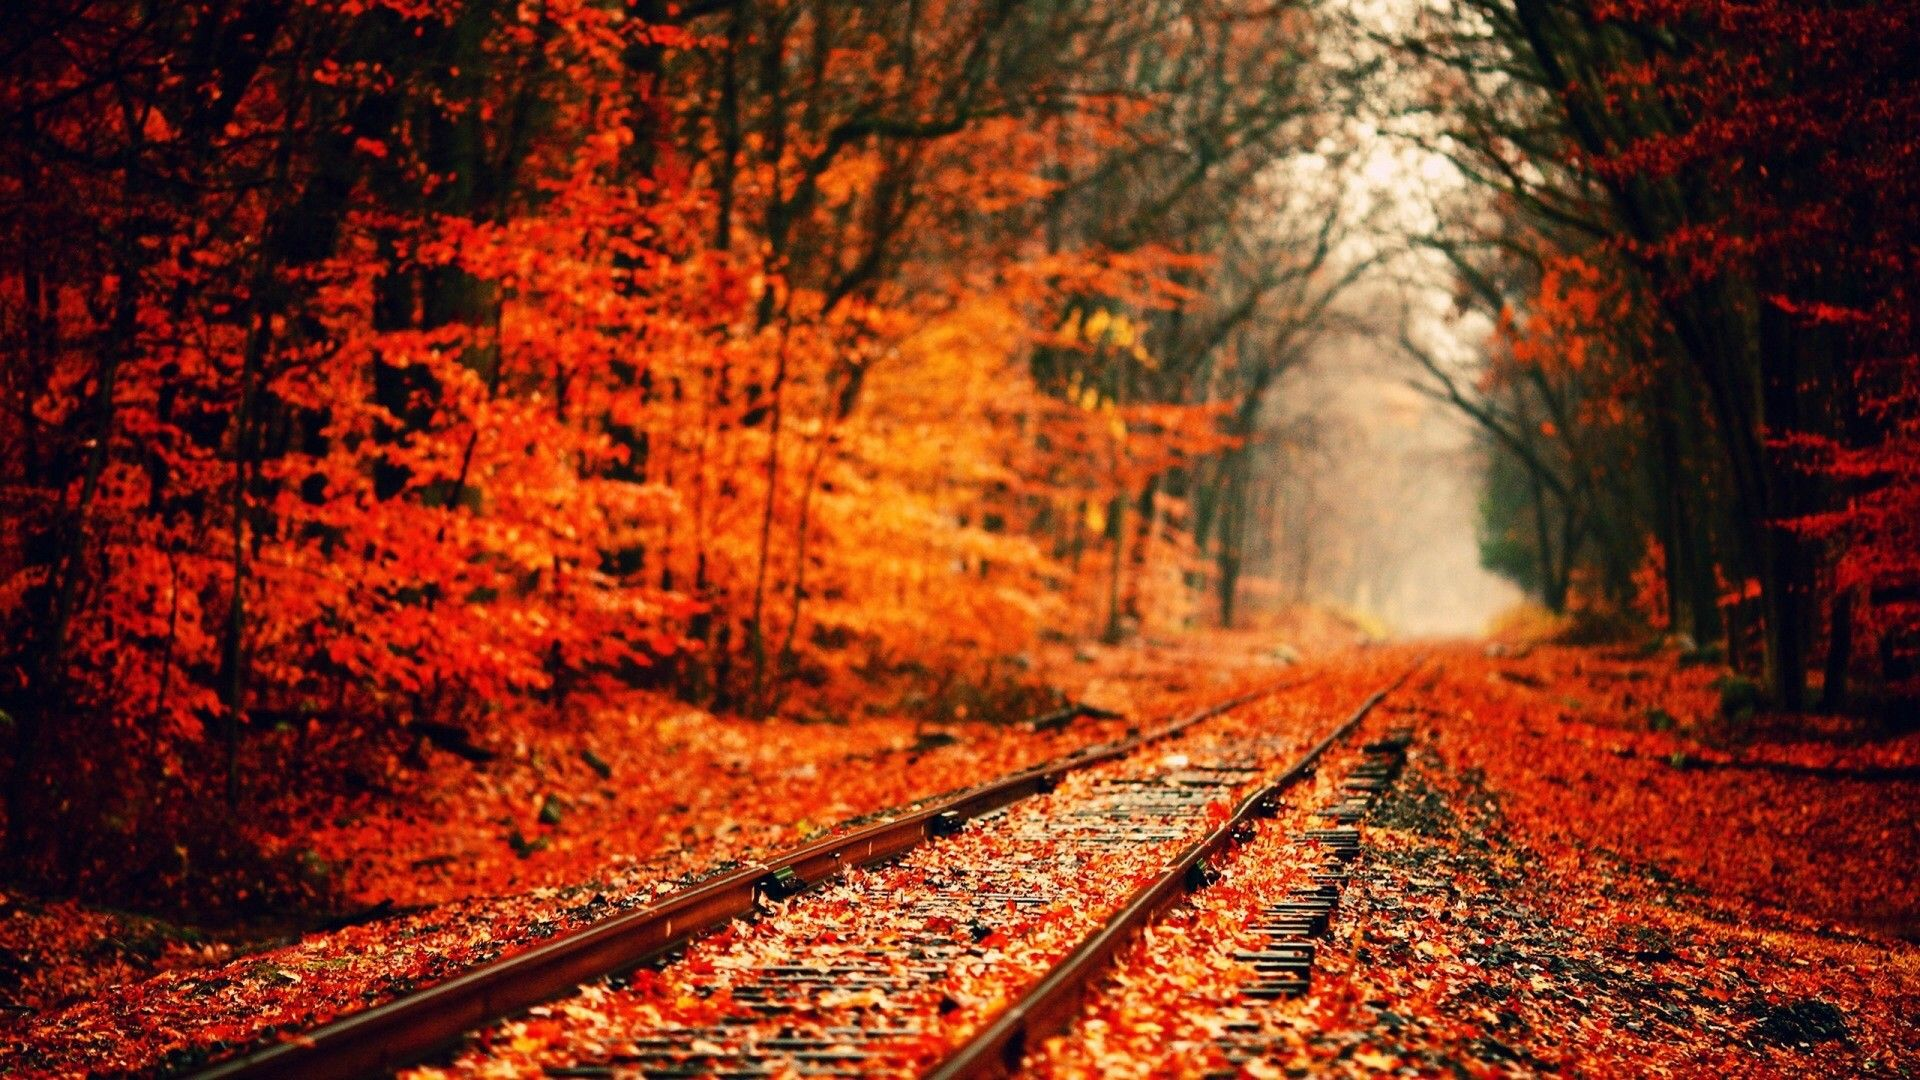 Hd 1080p Fall Wallpaper 79 Images: Full HD 1080p Autumn Wallpapers [OC] [1920 1080